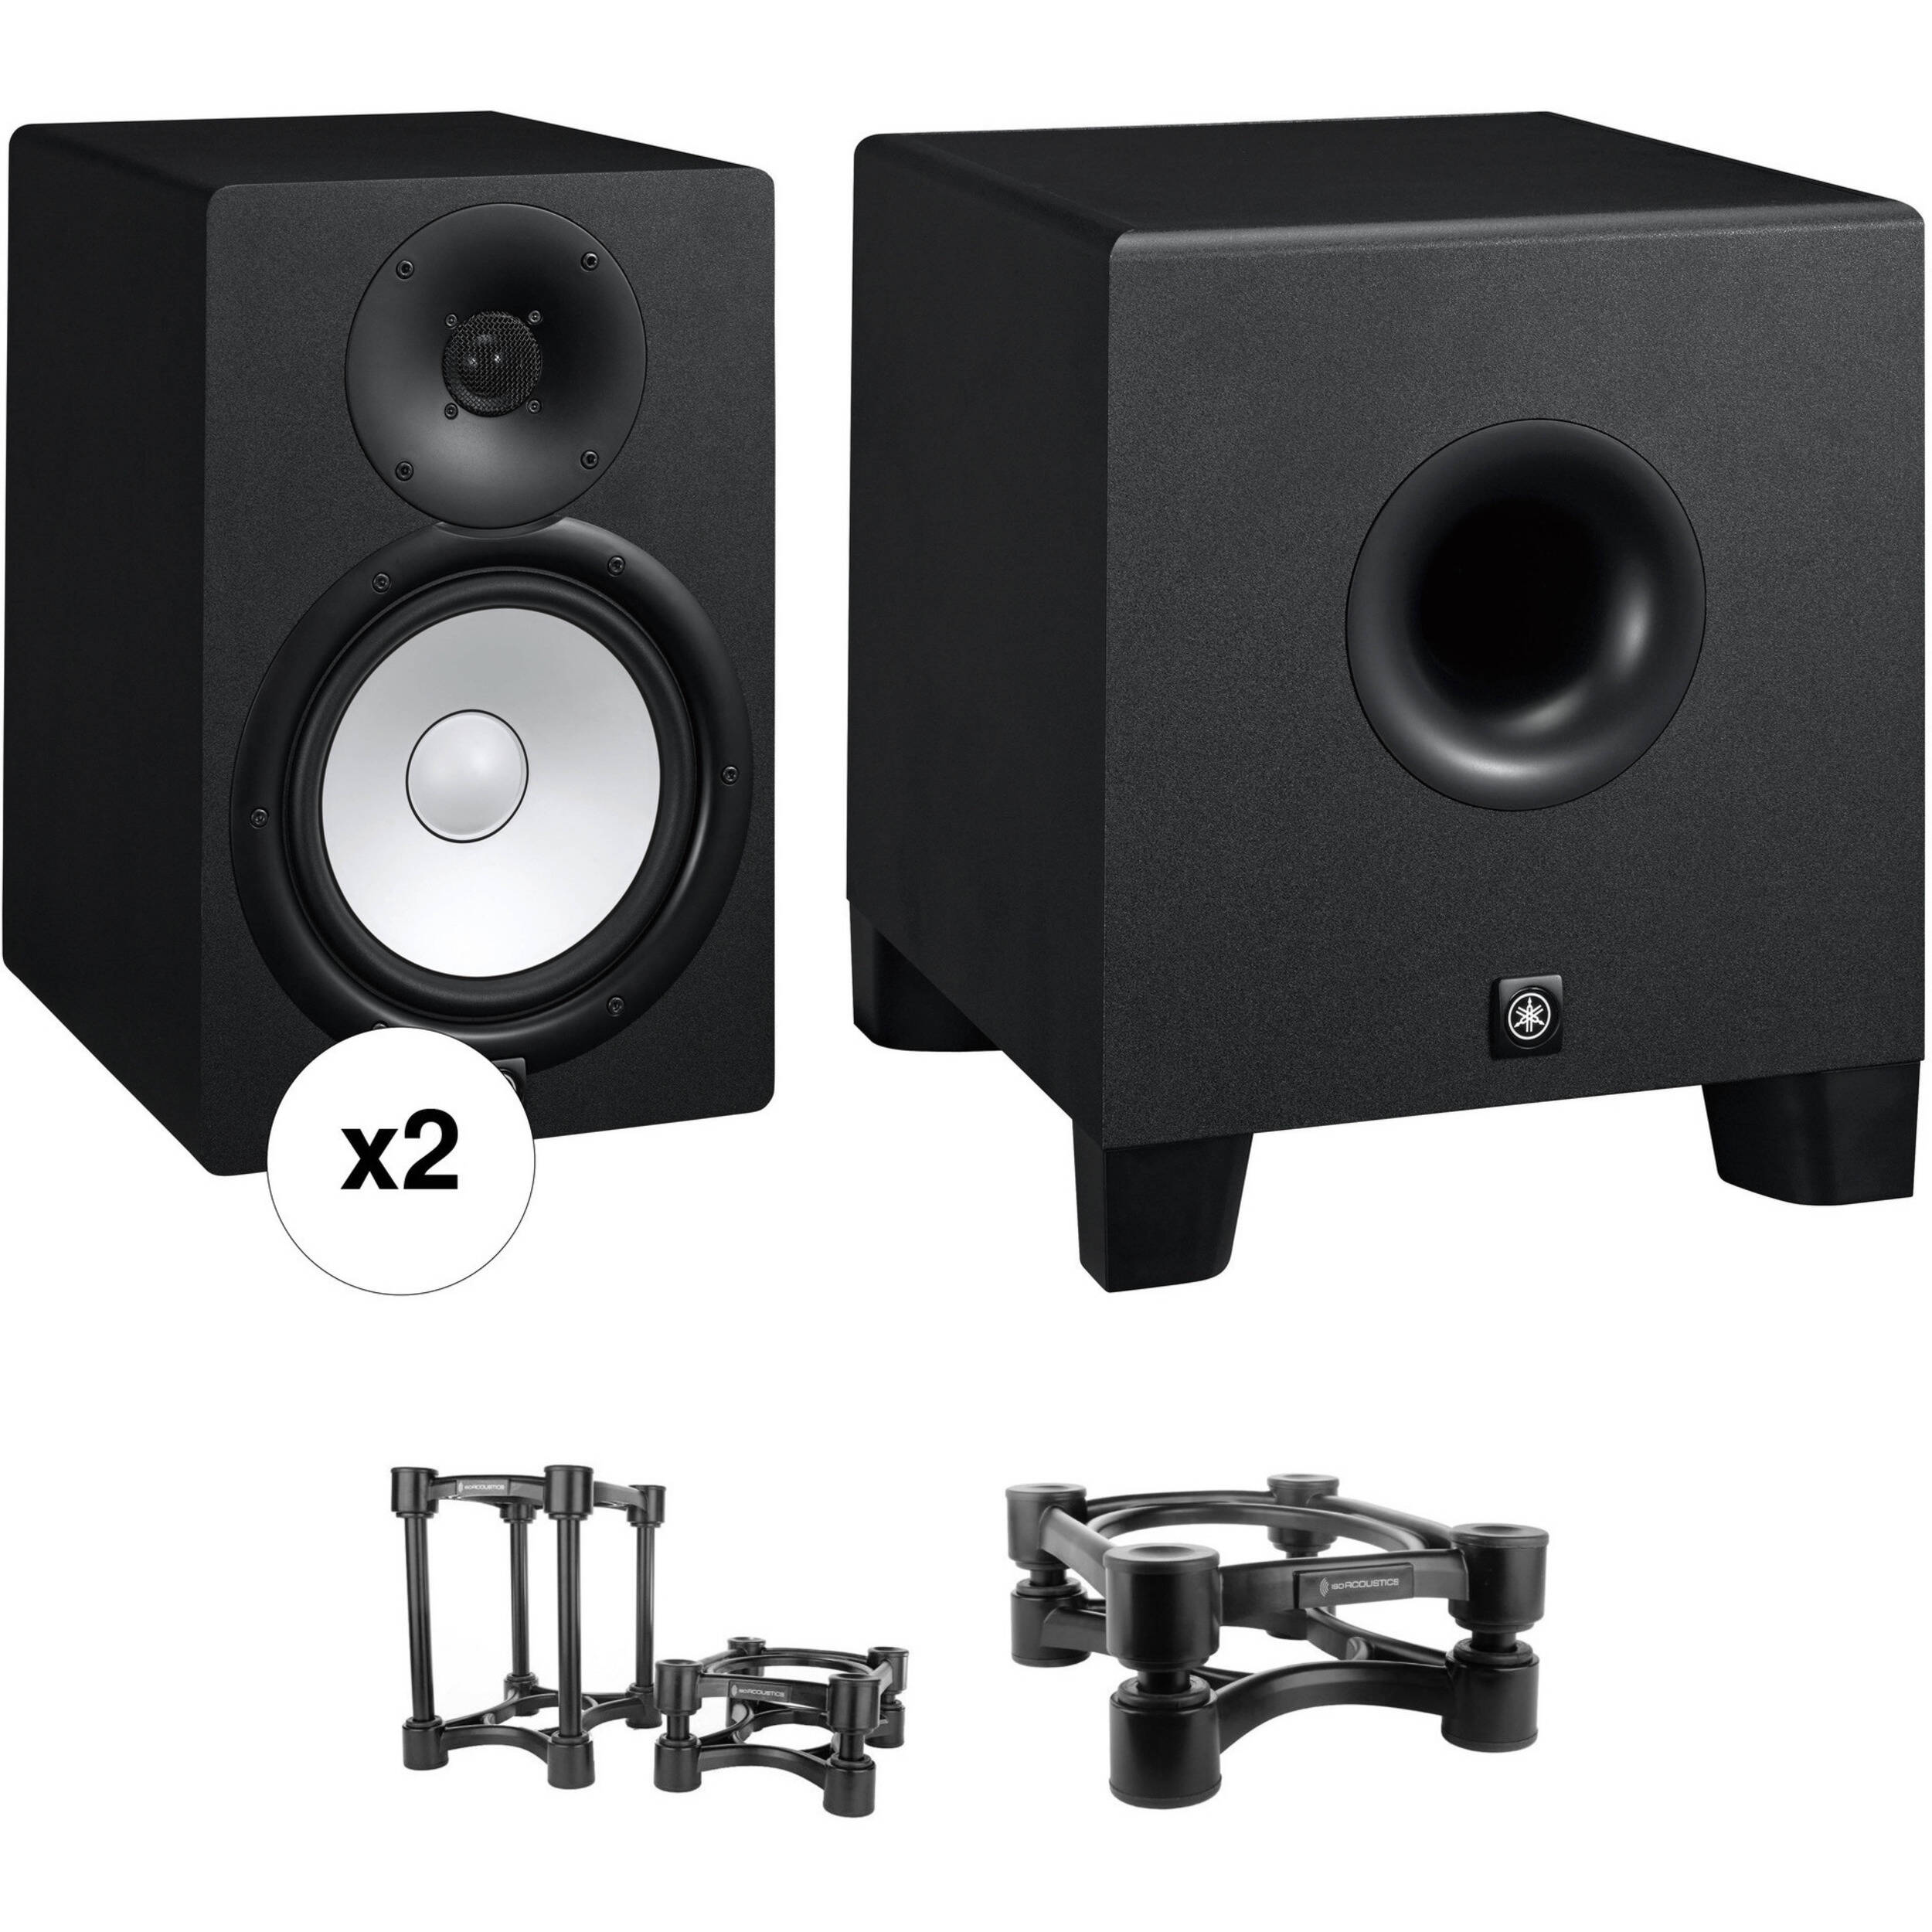 yamaha hs8 powered studio monitors and hs8s subwoofer b h photo. Black Bedroom Furniture Sets. Home Design Ideas